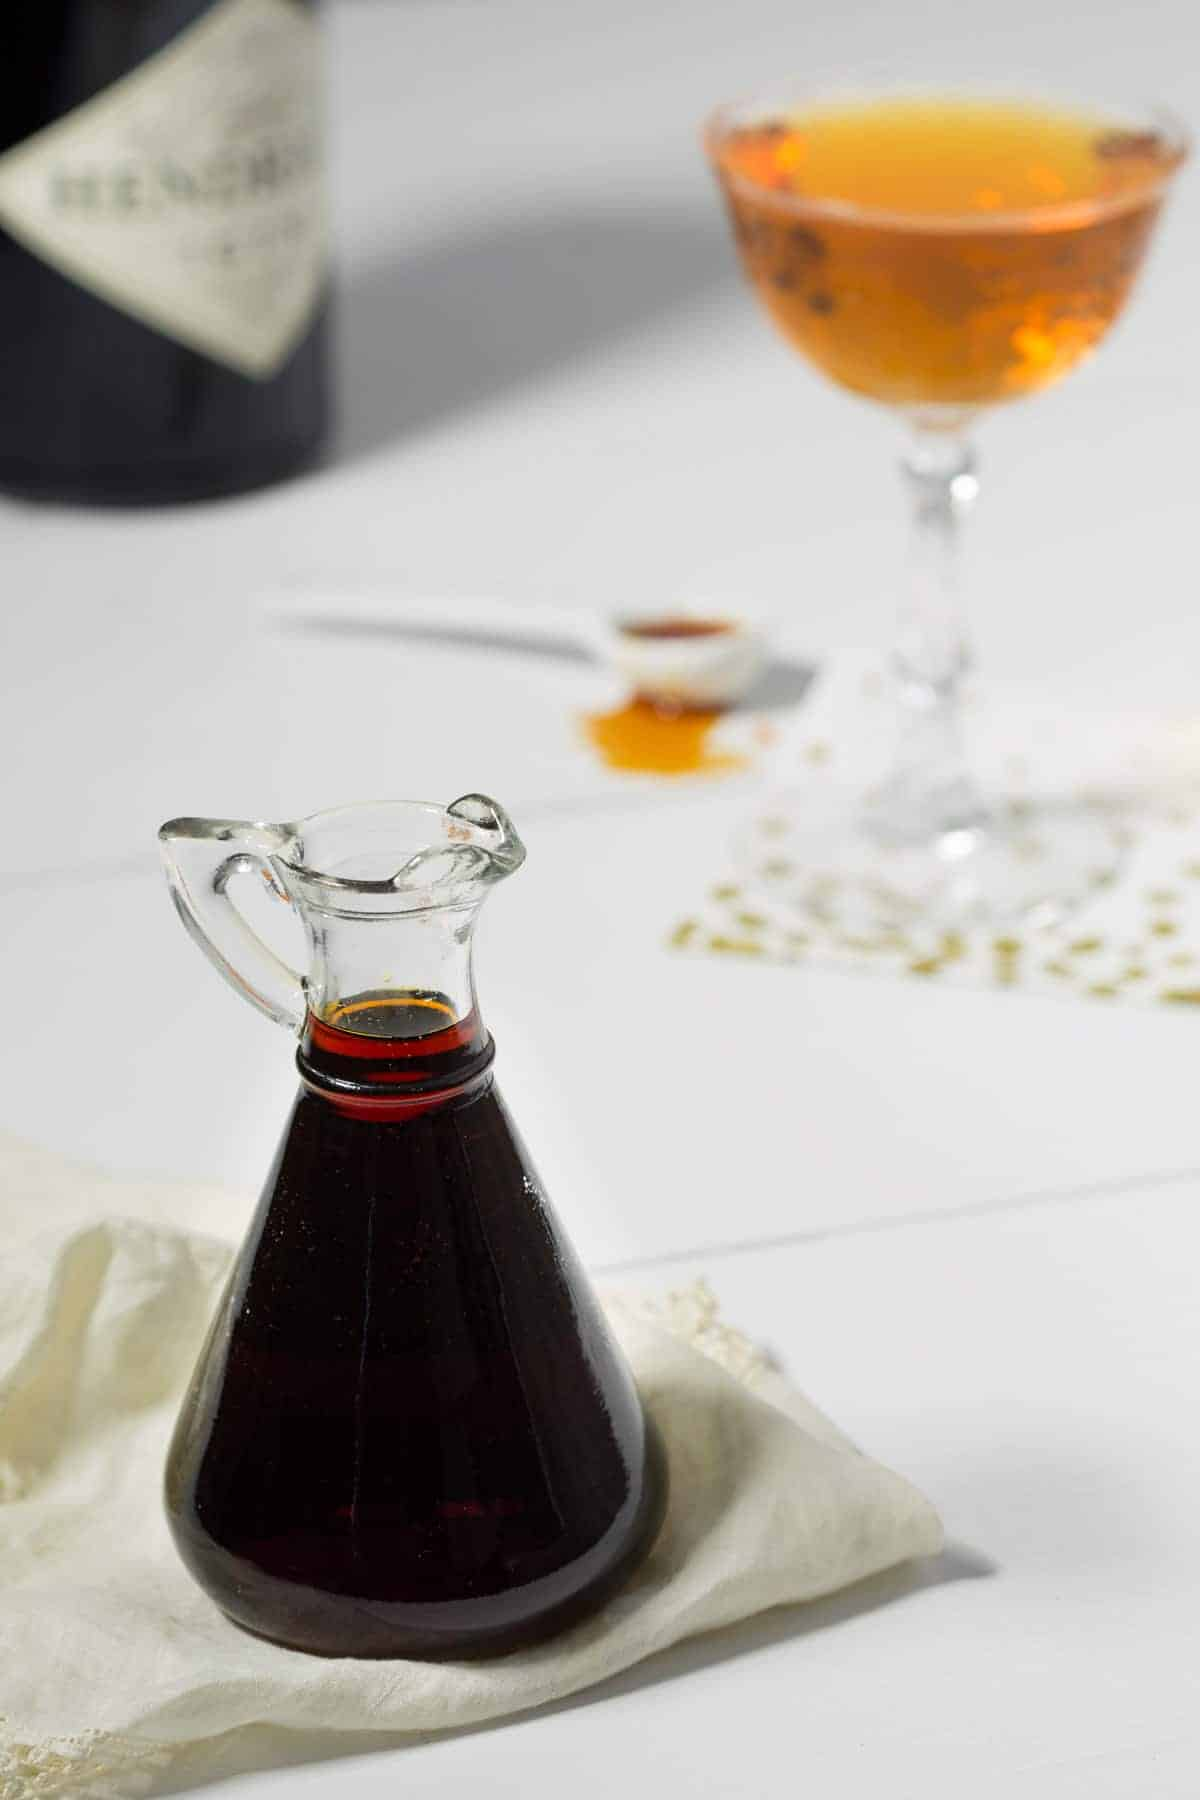 1952 Burnt Sugar Syrup - Deep, bitter, yet sweet, this Burnt Sugar Syrup has an interestingly complex flavor that is wonderful in cocktails, coffee, or cake. #vintagerecipe